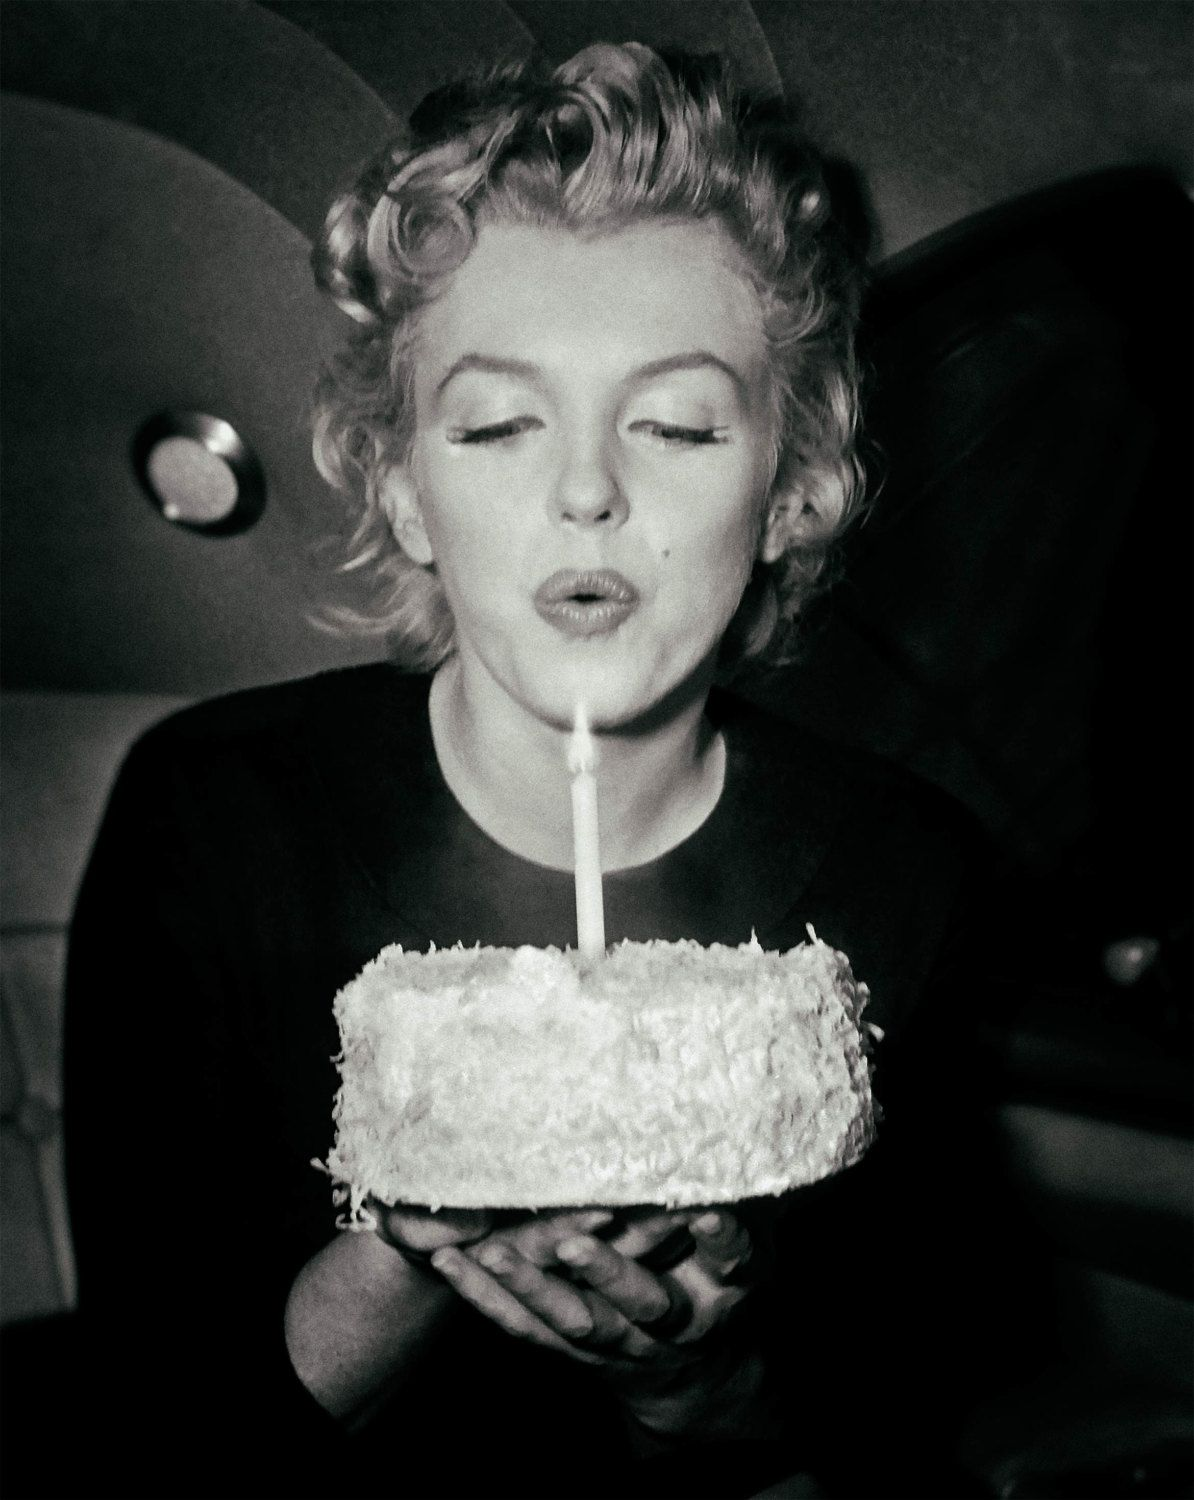 Marilyn Monroe Photo Print Poster Picture Birthday Cake Old Etsy Birthday Candle Photography Candles Photography Free Birthday Stuff